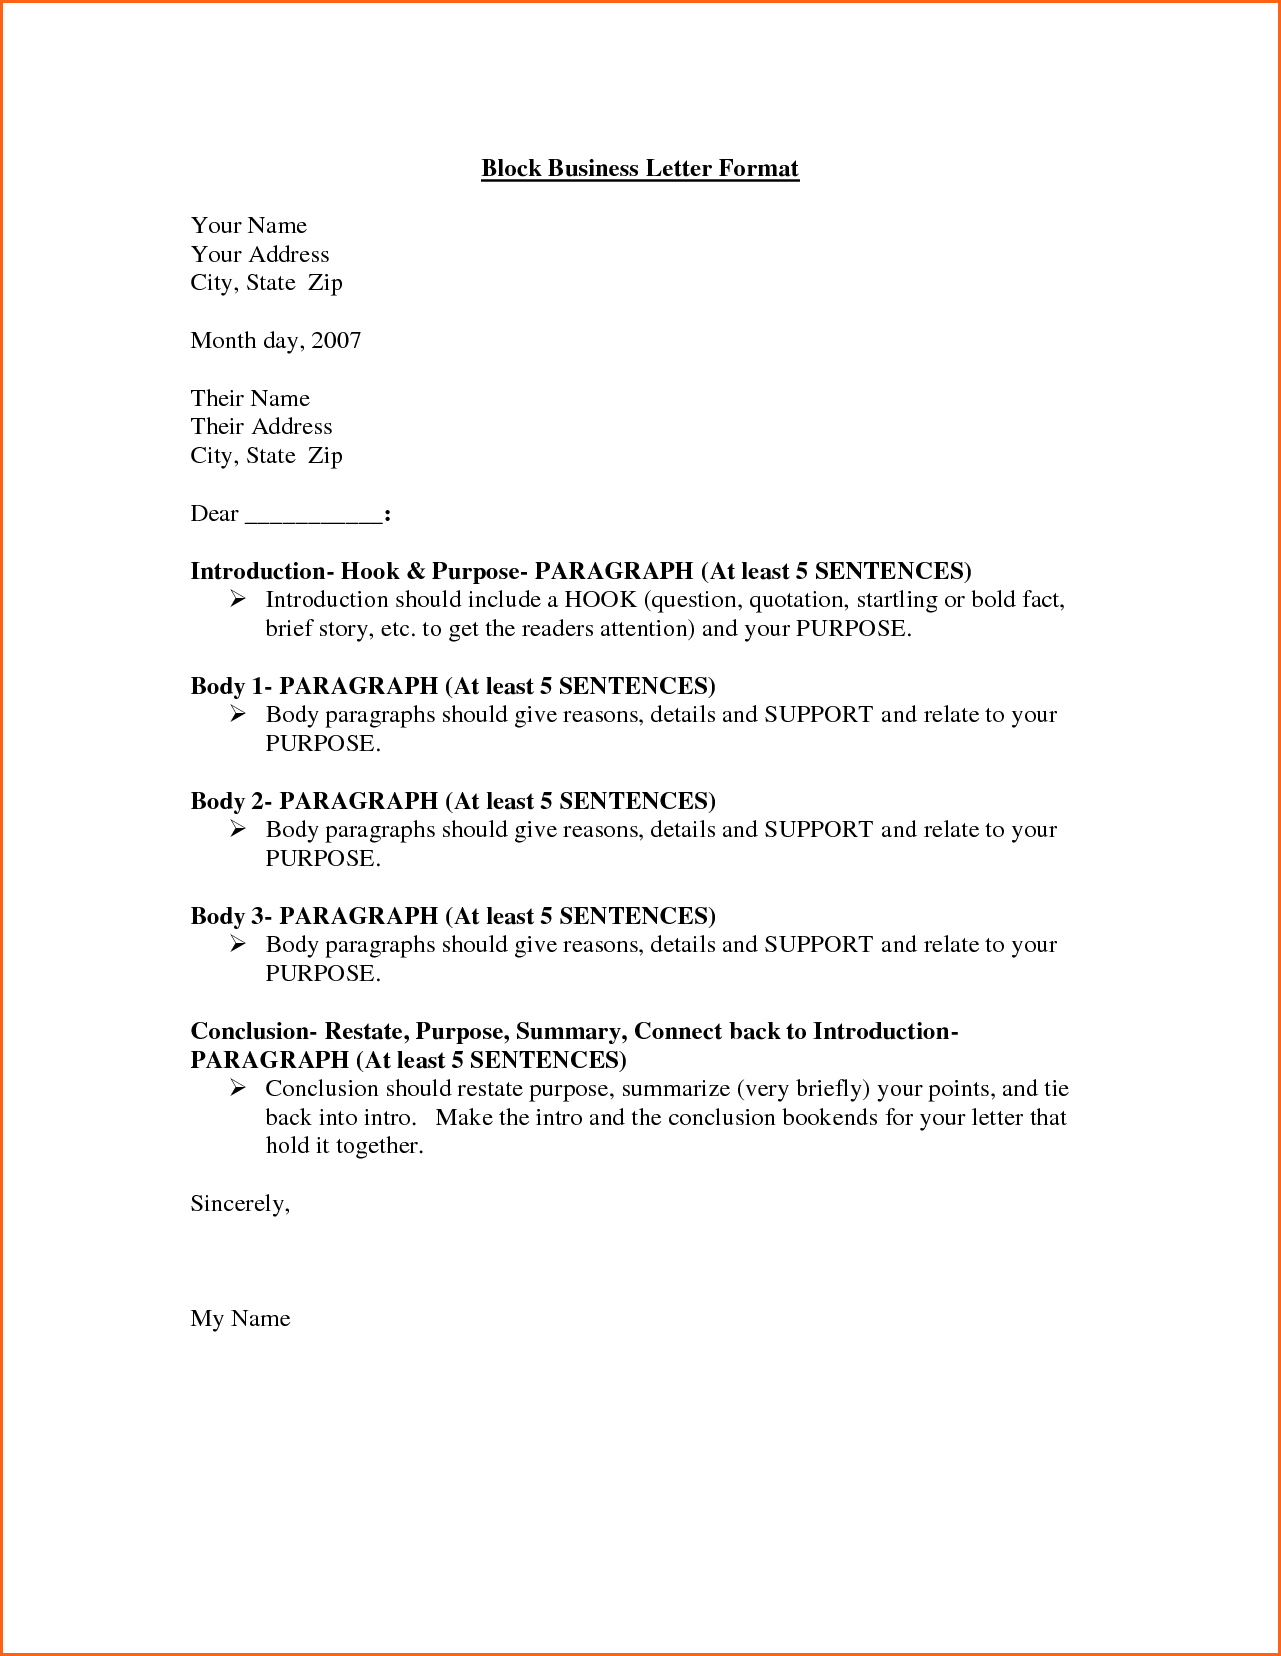 Business Letter Block Format Example Full Jpg Style Contract